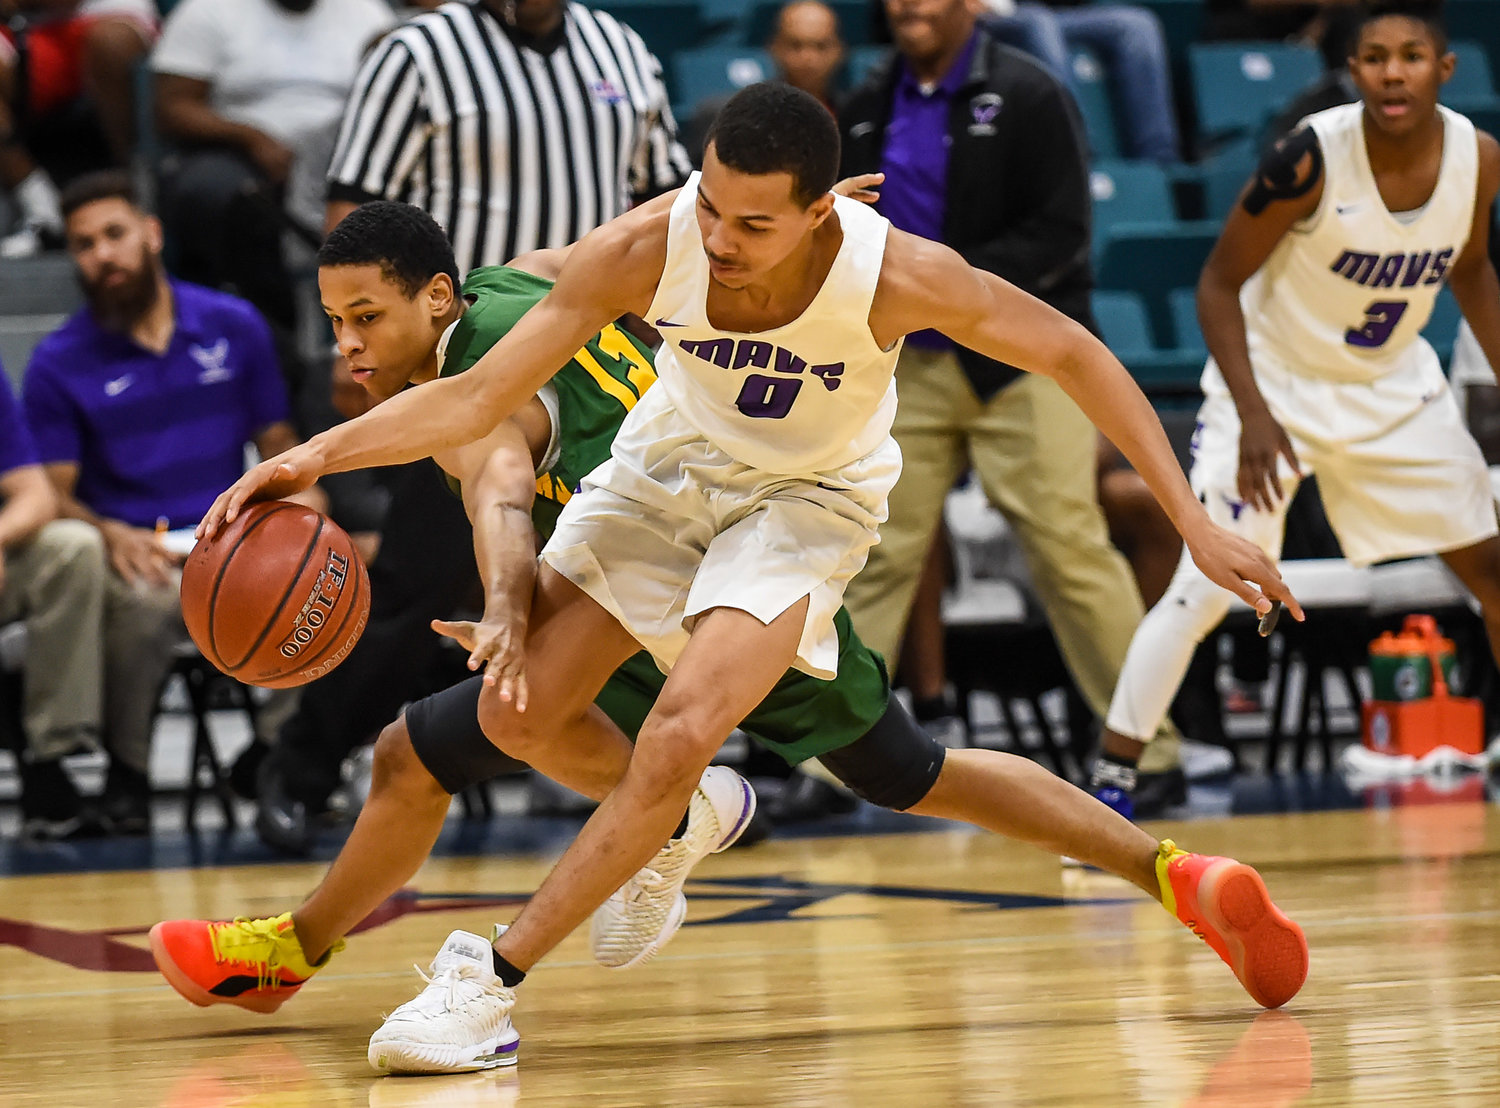 Katy Tx. Dec7, 2019: Morton Ranch's Westley Sellers (0) dribbles away at Klein Forest's Darius Solomon (13) reached in on a steal attempt during the Katy Classic at the Merrell Center.  (Photo by Mark Goodman / Katy Times)